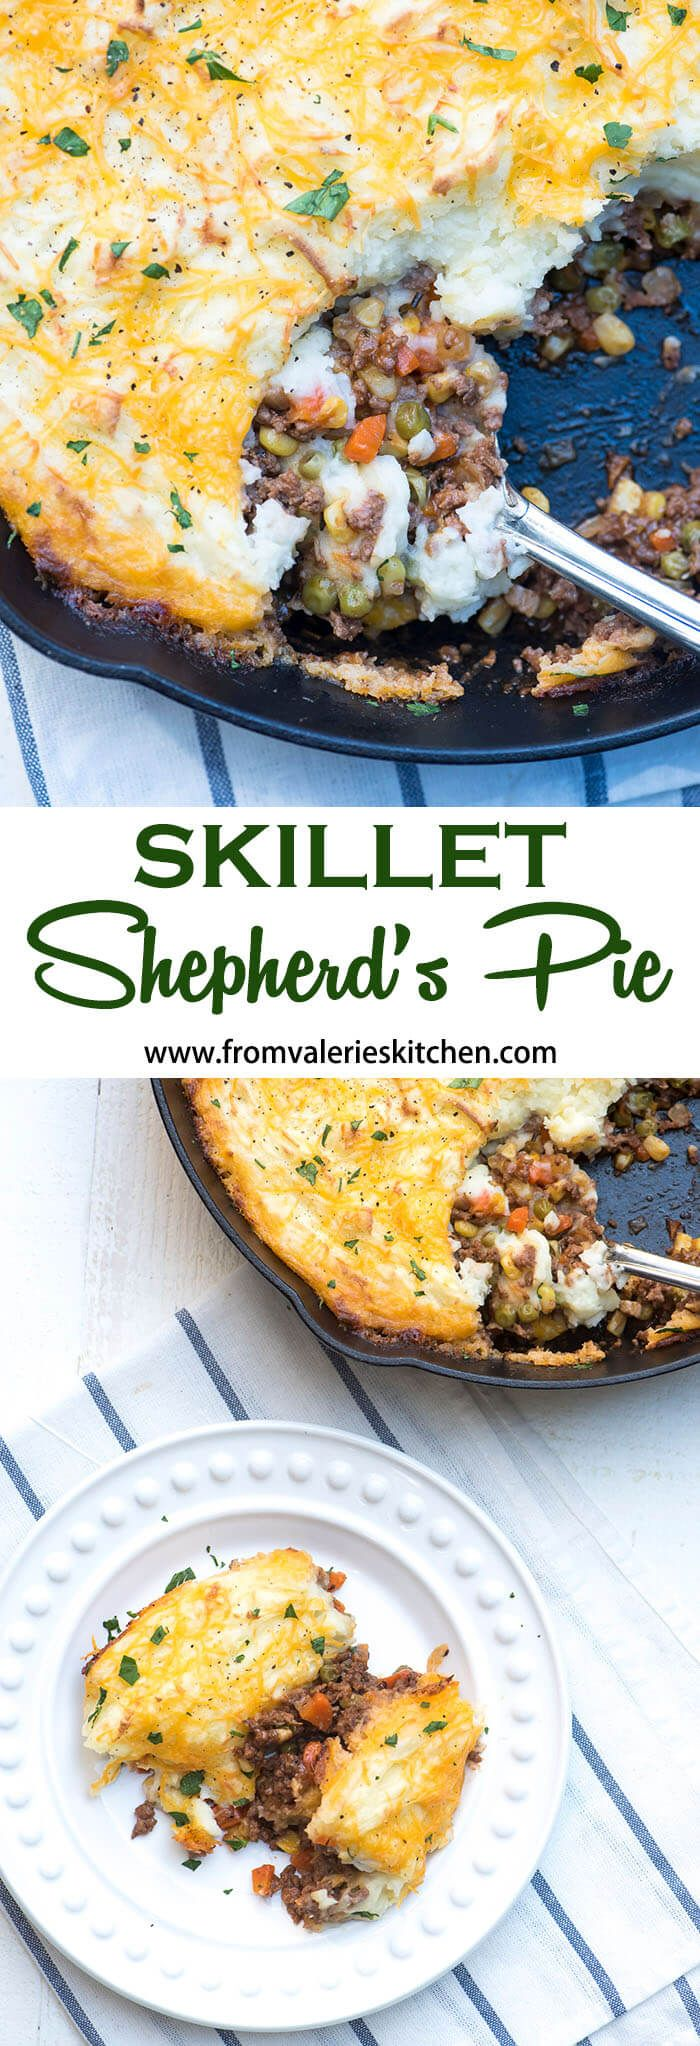 A delicious mixture of seasoned ground beef and vegetables is topped with a layer of mashed potatoes, sprinkled with cheddar cheese, and baked until golden brown. This Skillet Shepherd's Pie is a quick and easy version of the classic dish.